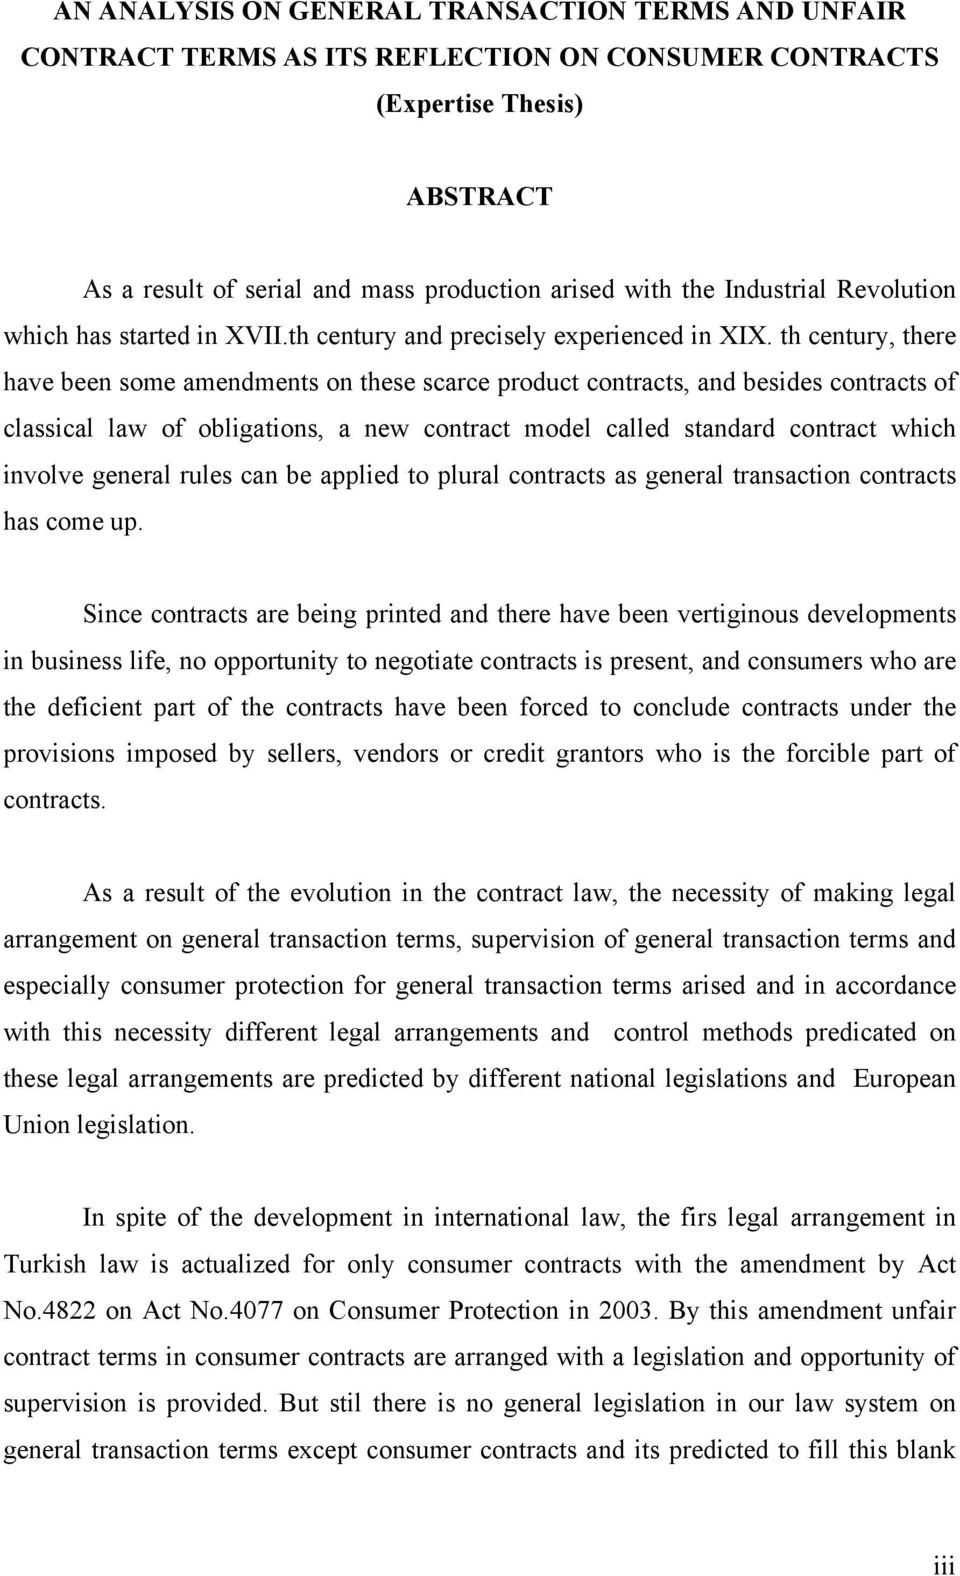 th century, there have been some amendments on these scarce product contracts, and besides contracts of classical law of obligations, a new contract model called standard contract which involve